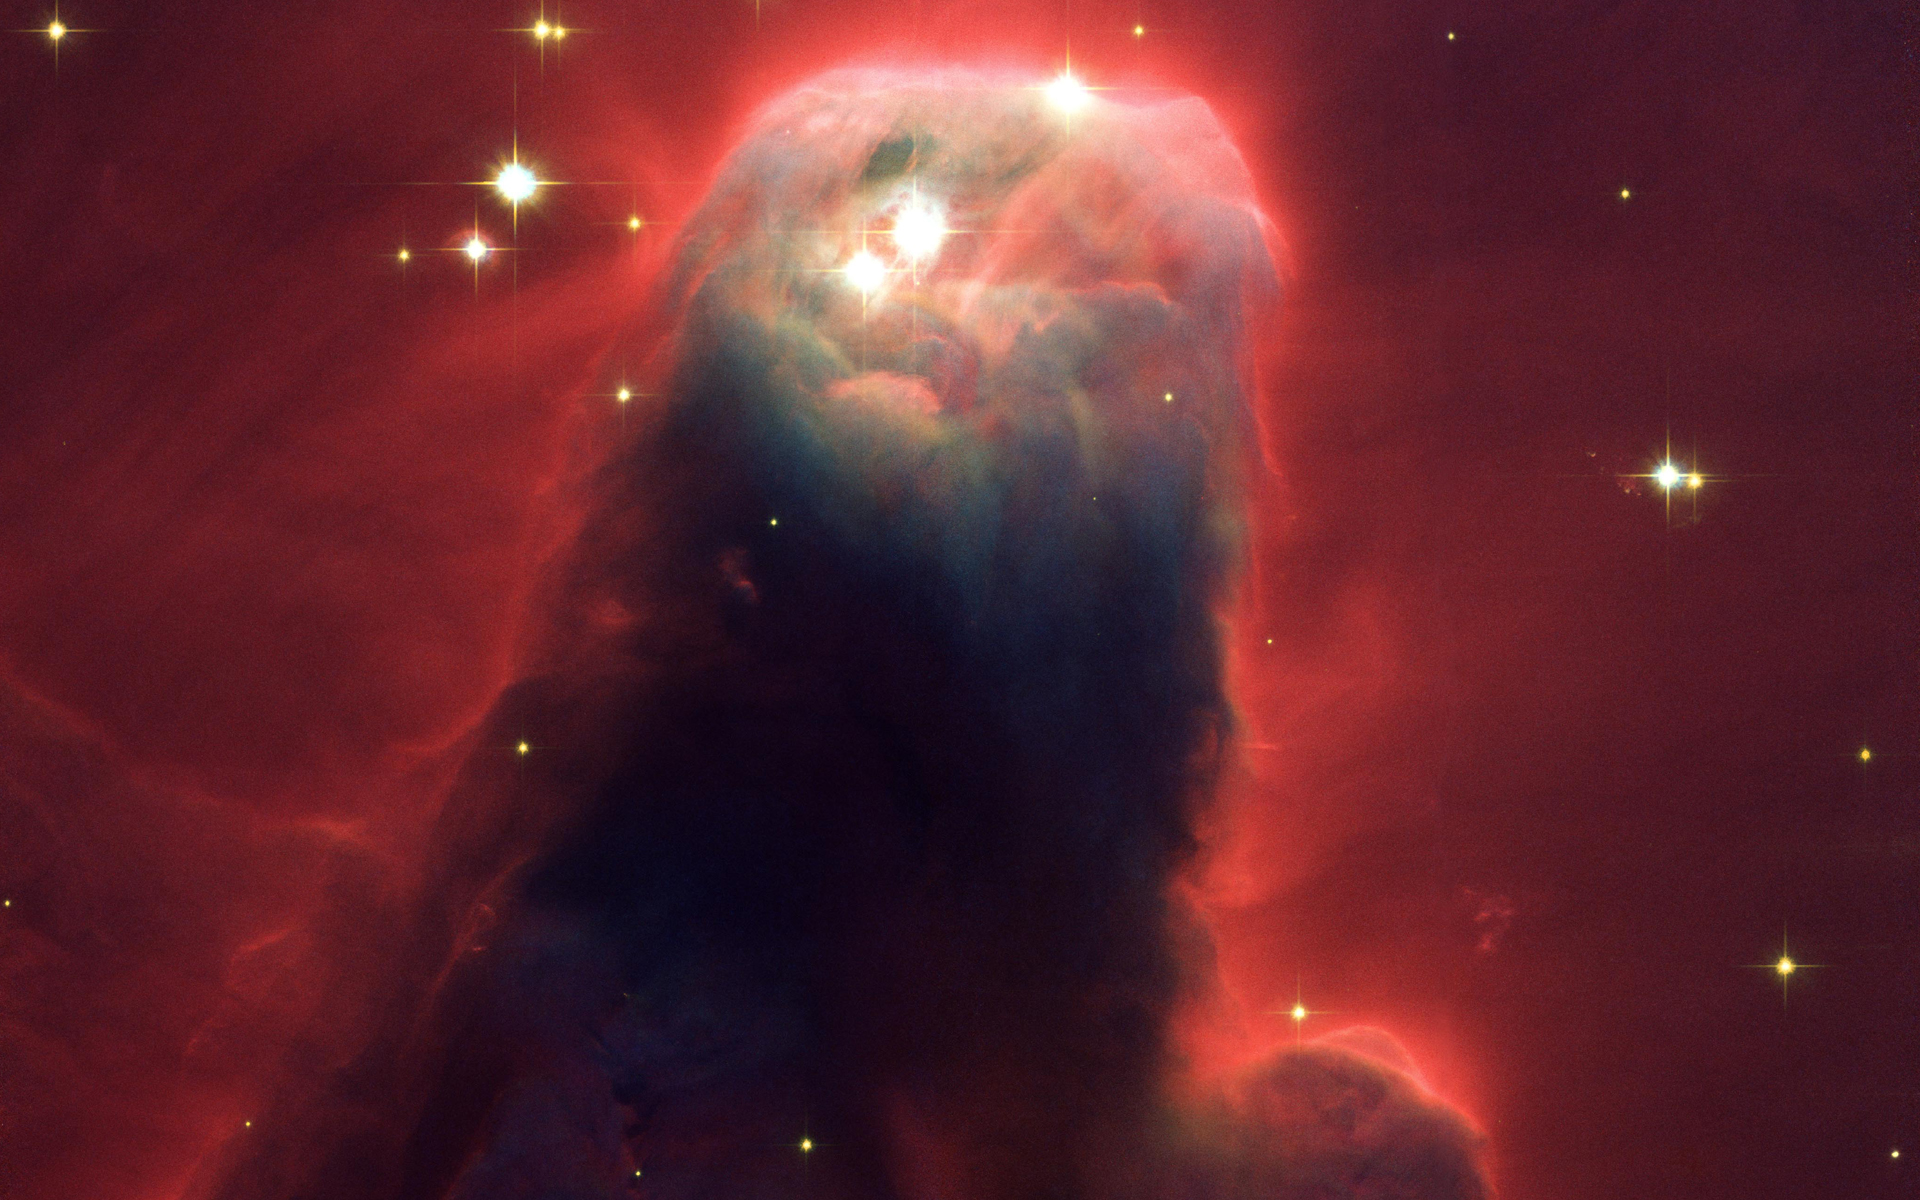 Hubble Telescope Wallpapers   HQ Wallpapers   HQ Wallpapers 1920x1200